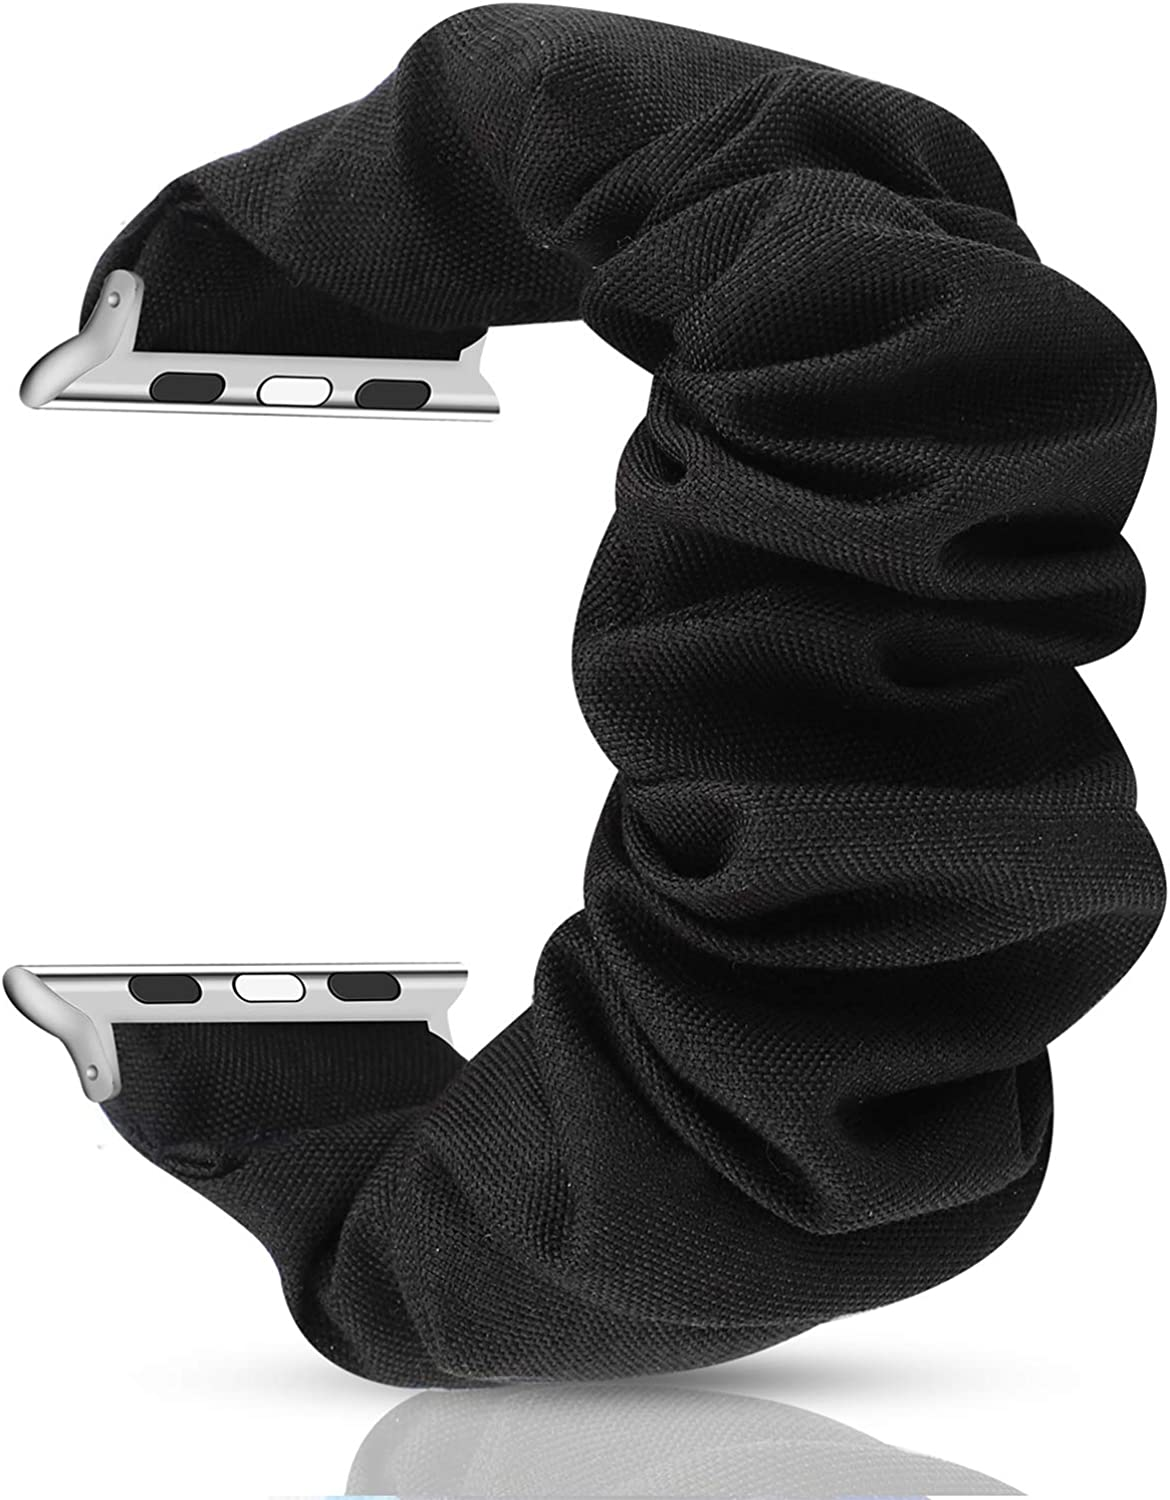 PENKEY Woman Scrunchie Elastic Wristband Compatible for Apple Watch Band 38mm 40mm,Soft and Fashion Pattern Printed Replacement Wristbands for iWatch Series 1 2 3 4 5 …